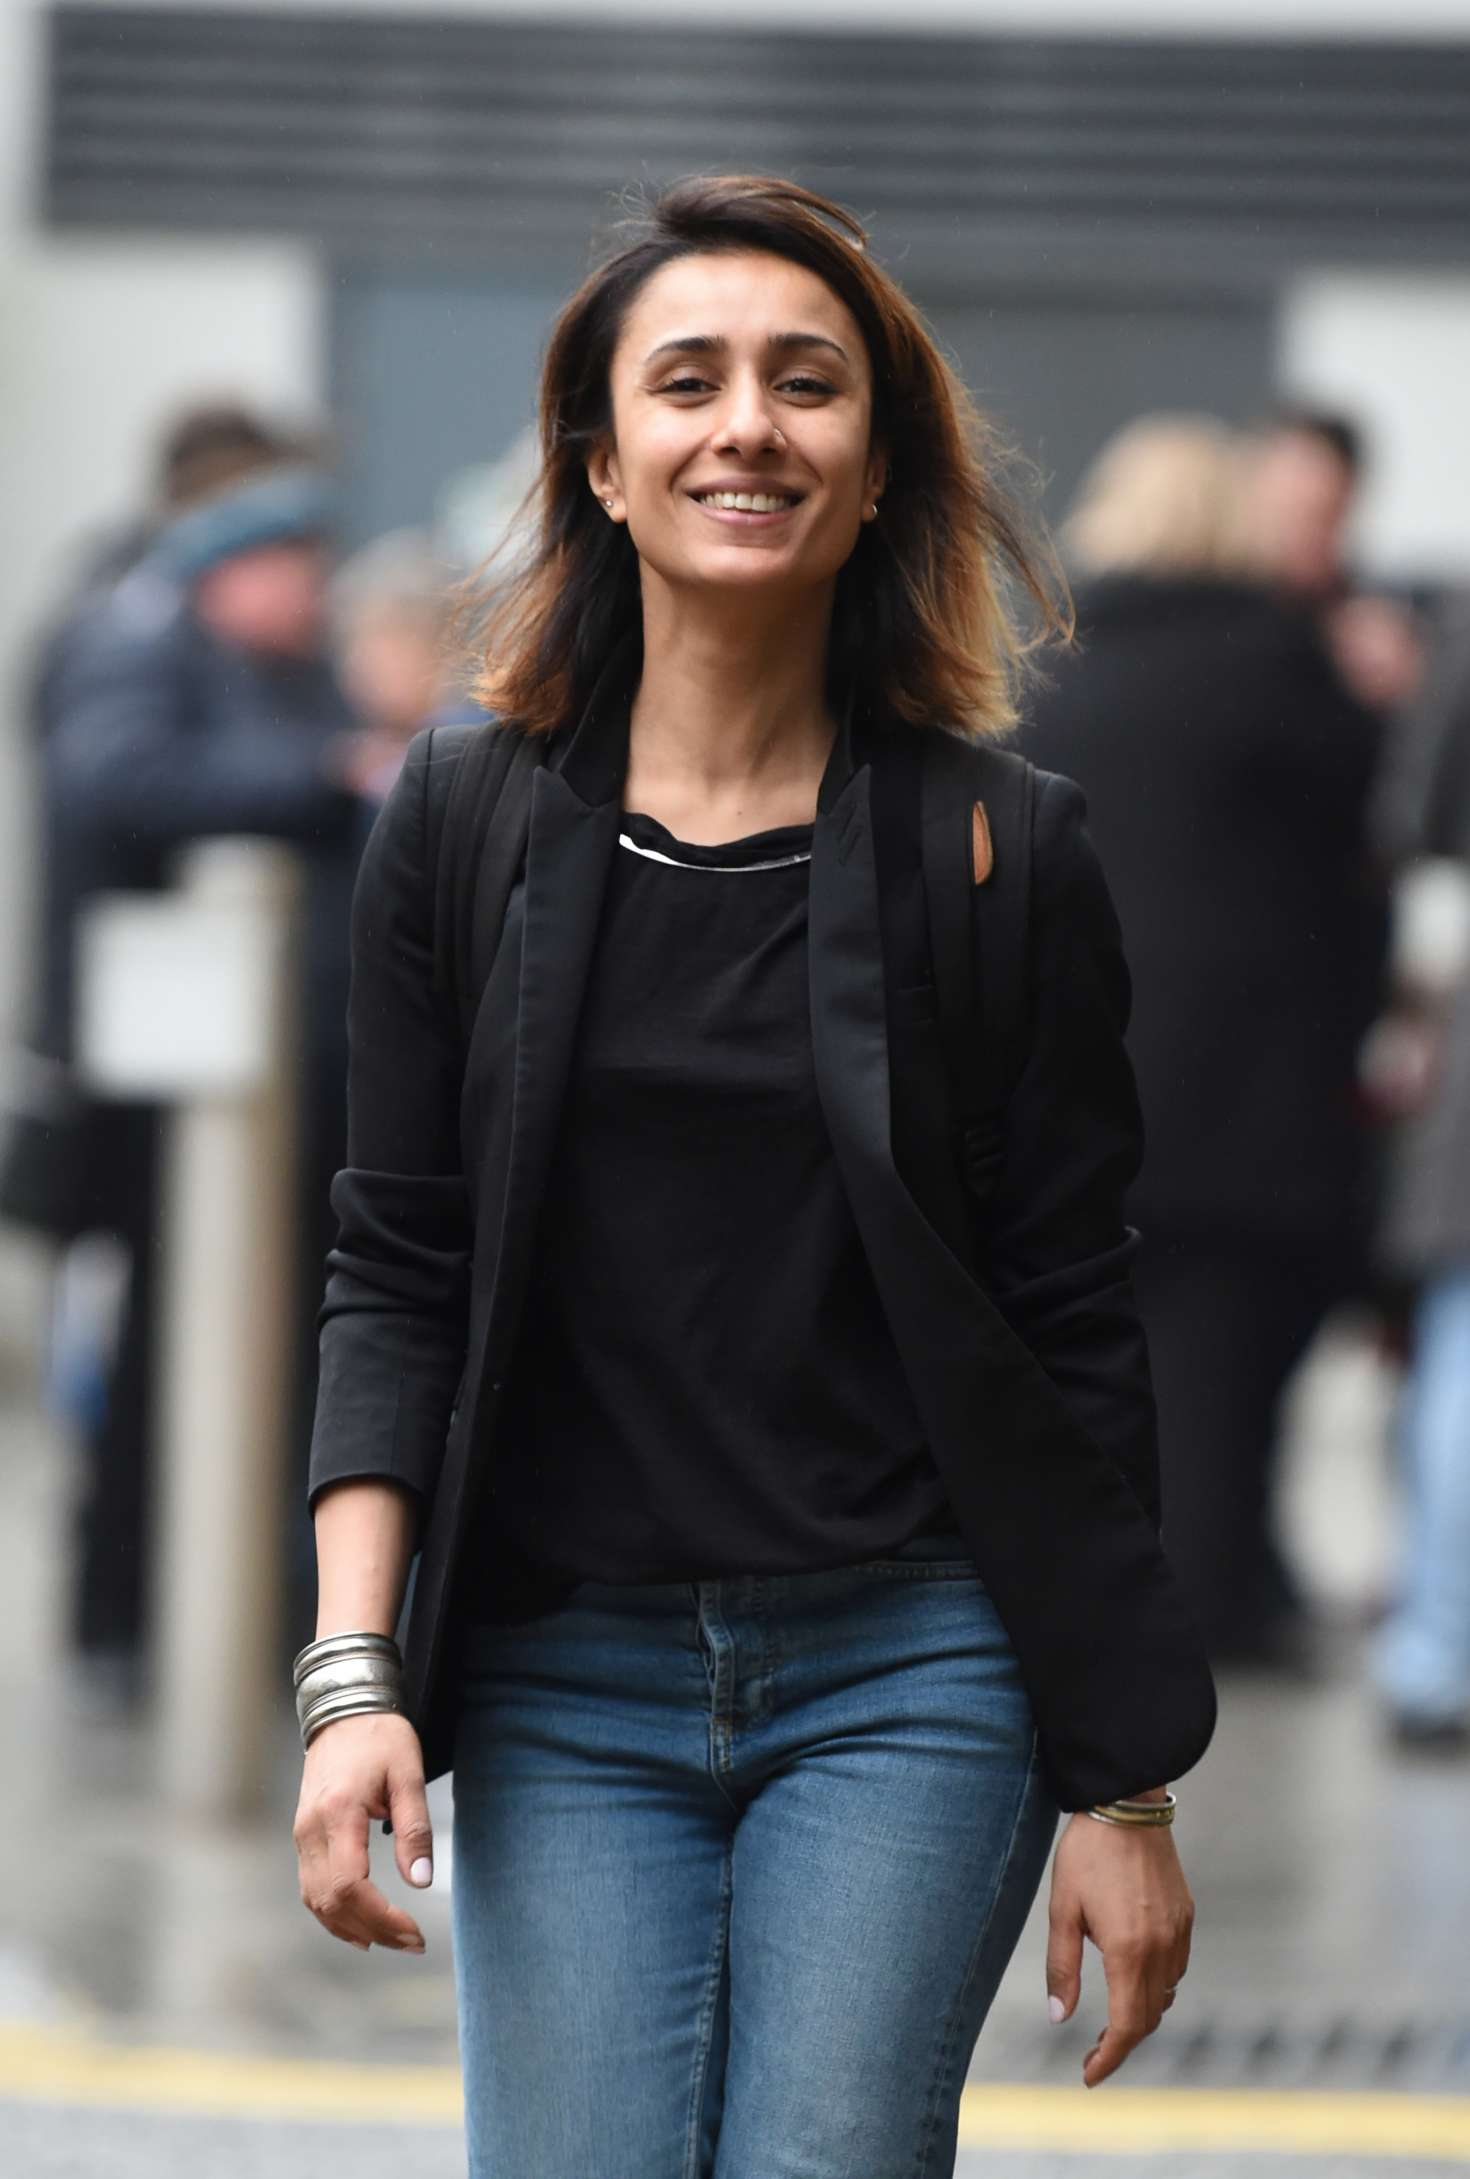 Anita Rani in Jeans out in Birmigham